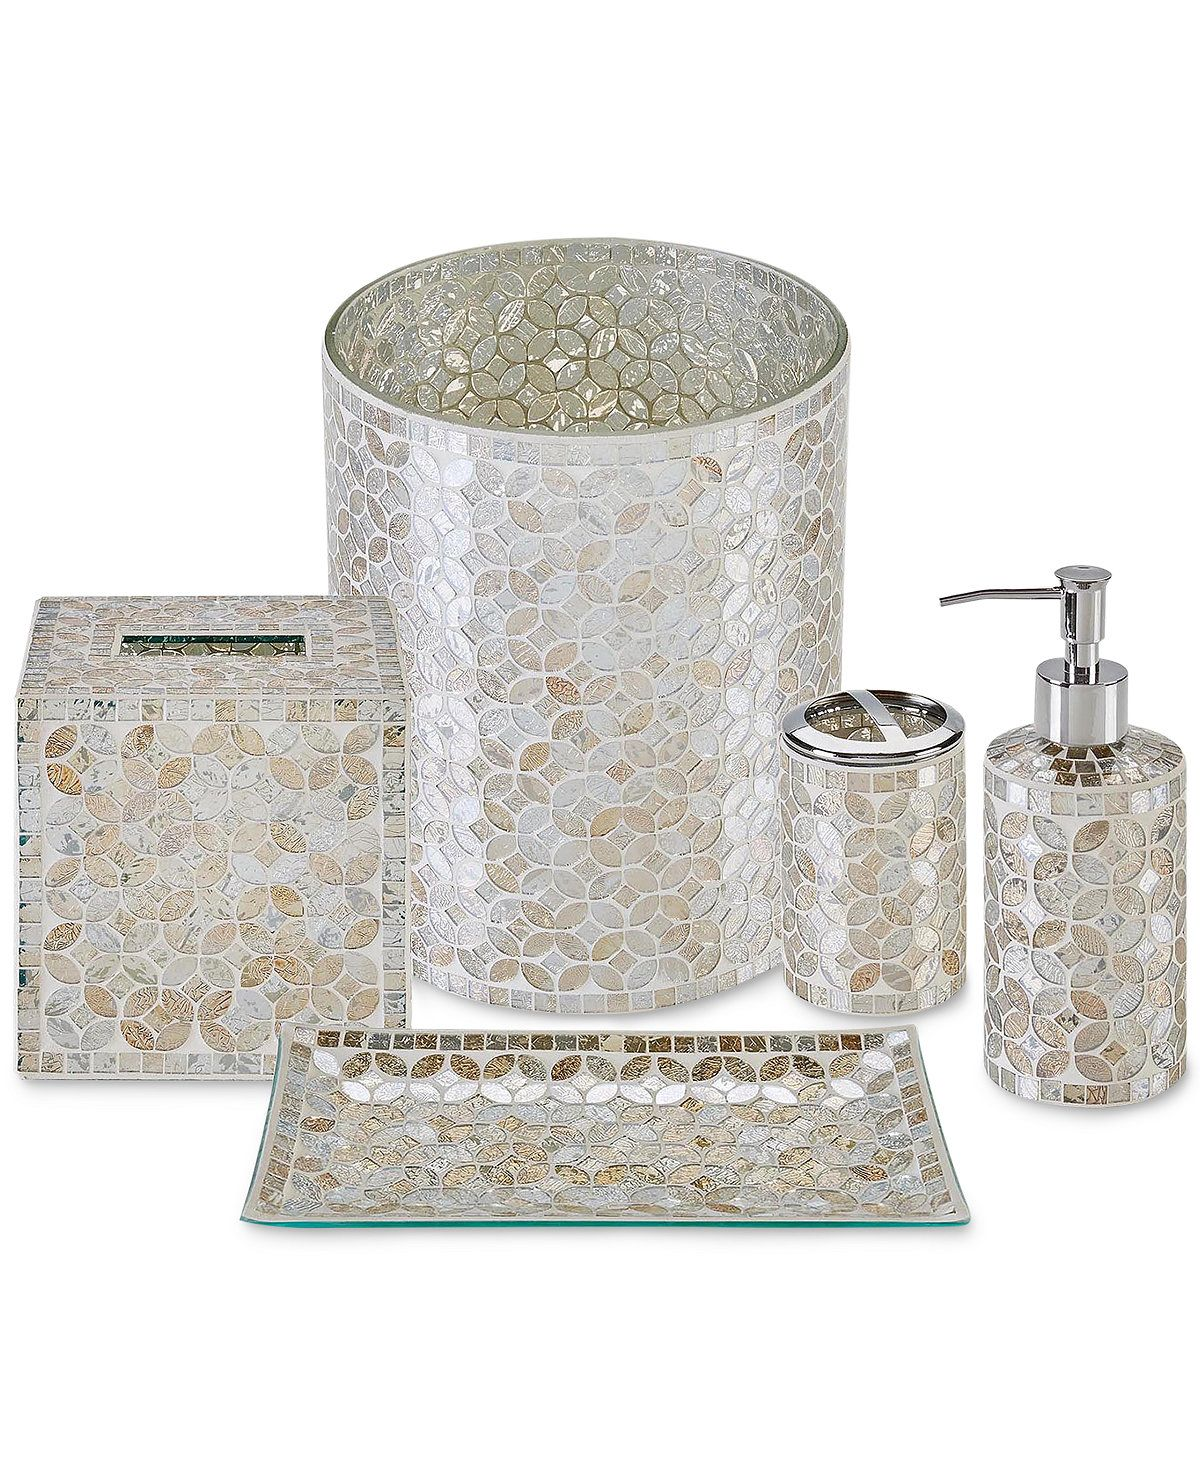 Jla Home Cape Mosaic Bath Accessories A Macy S Exclusive Style